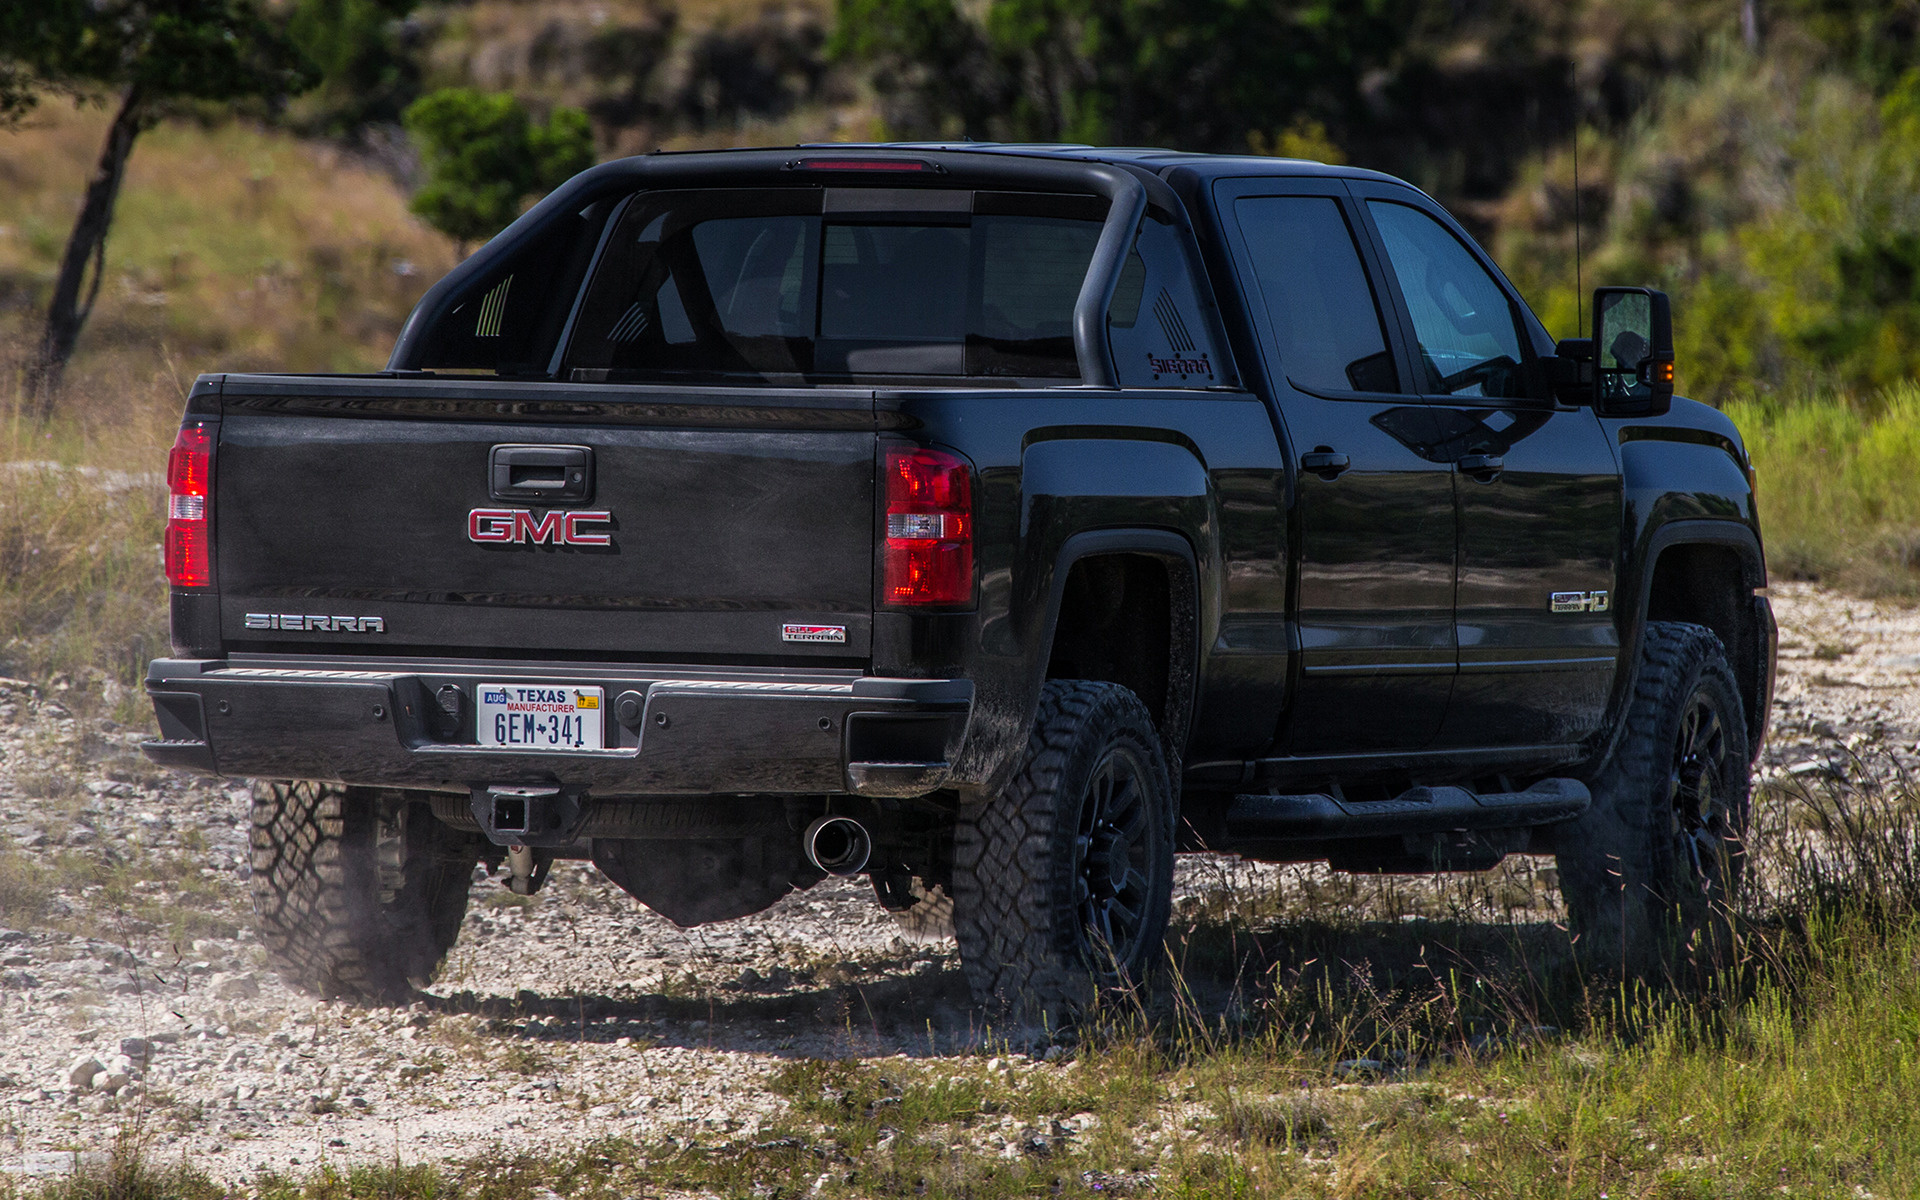 gmc sierra 2500 hd all terrain x crew cab 2017 wallpapers and hd images car pixel. Black Bedroom Furniture Sets. Home Design Ideas